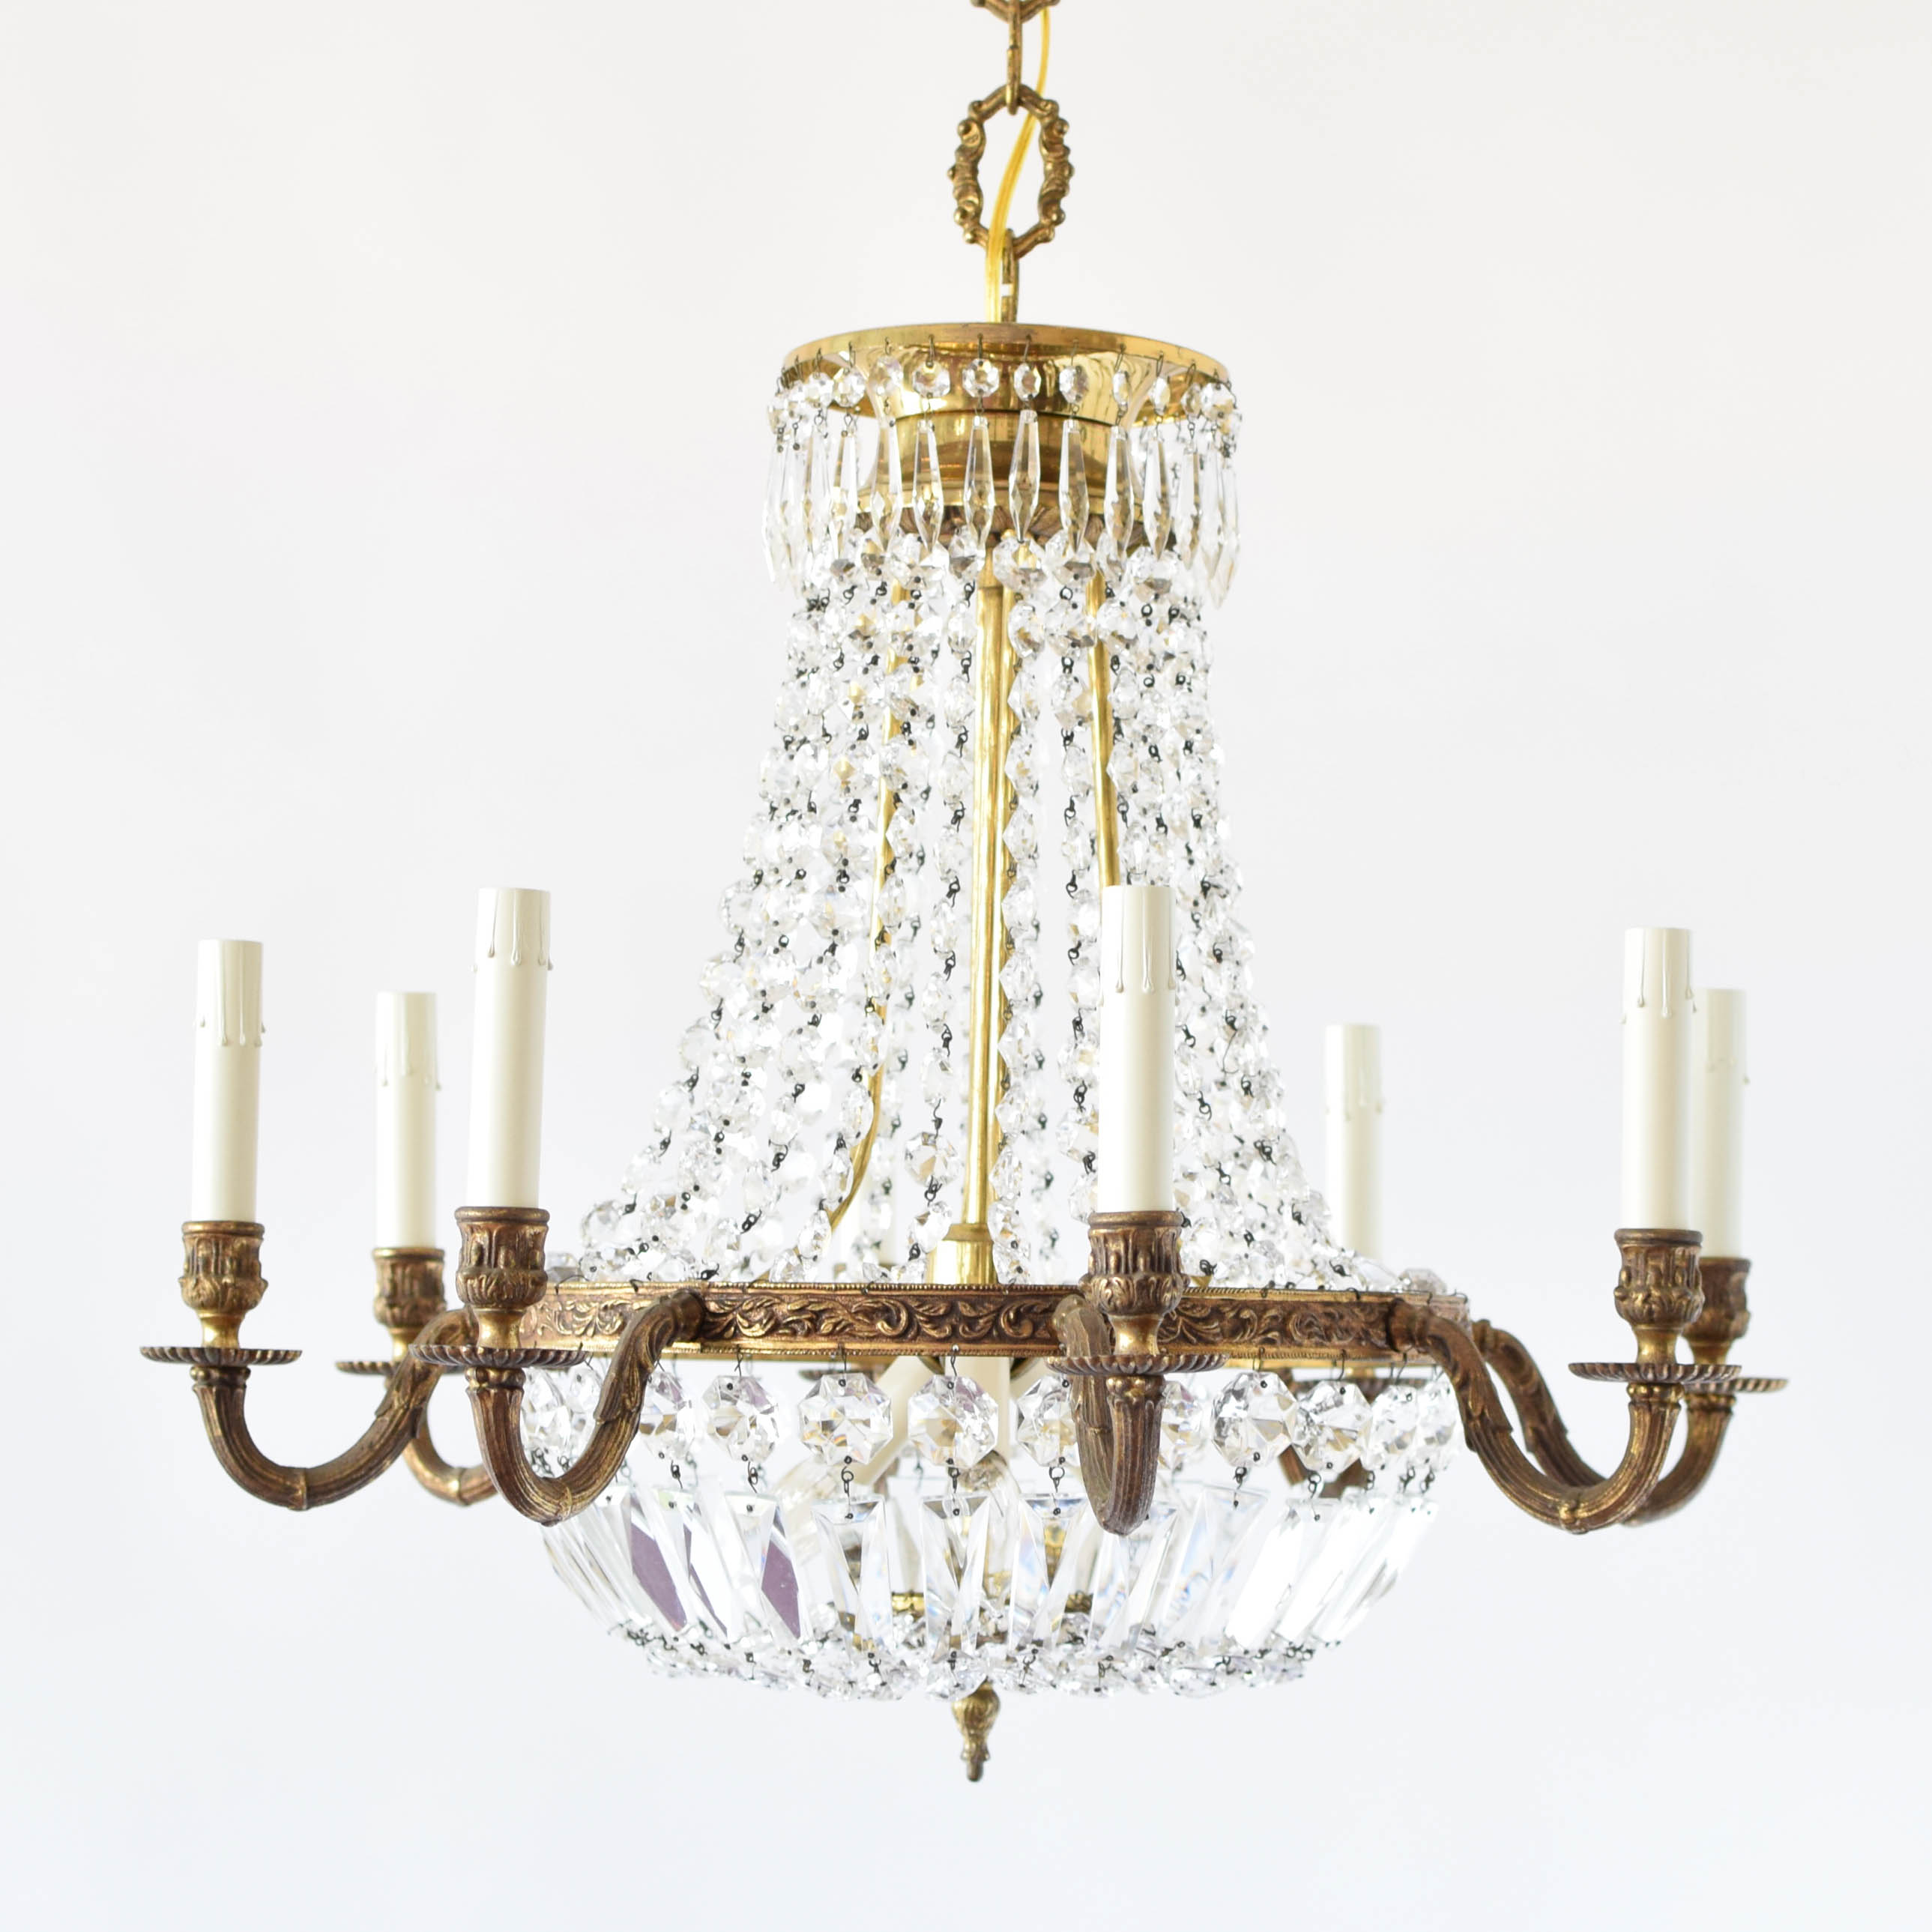 style fashioned foundry laurel wayfair farmhouse old k ashburn light candle chandelier modern